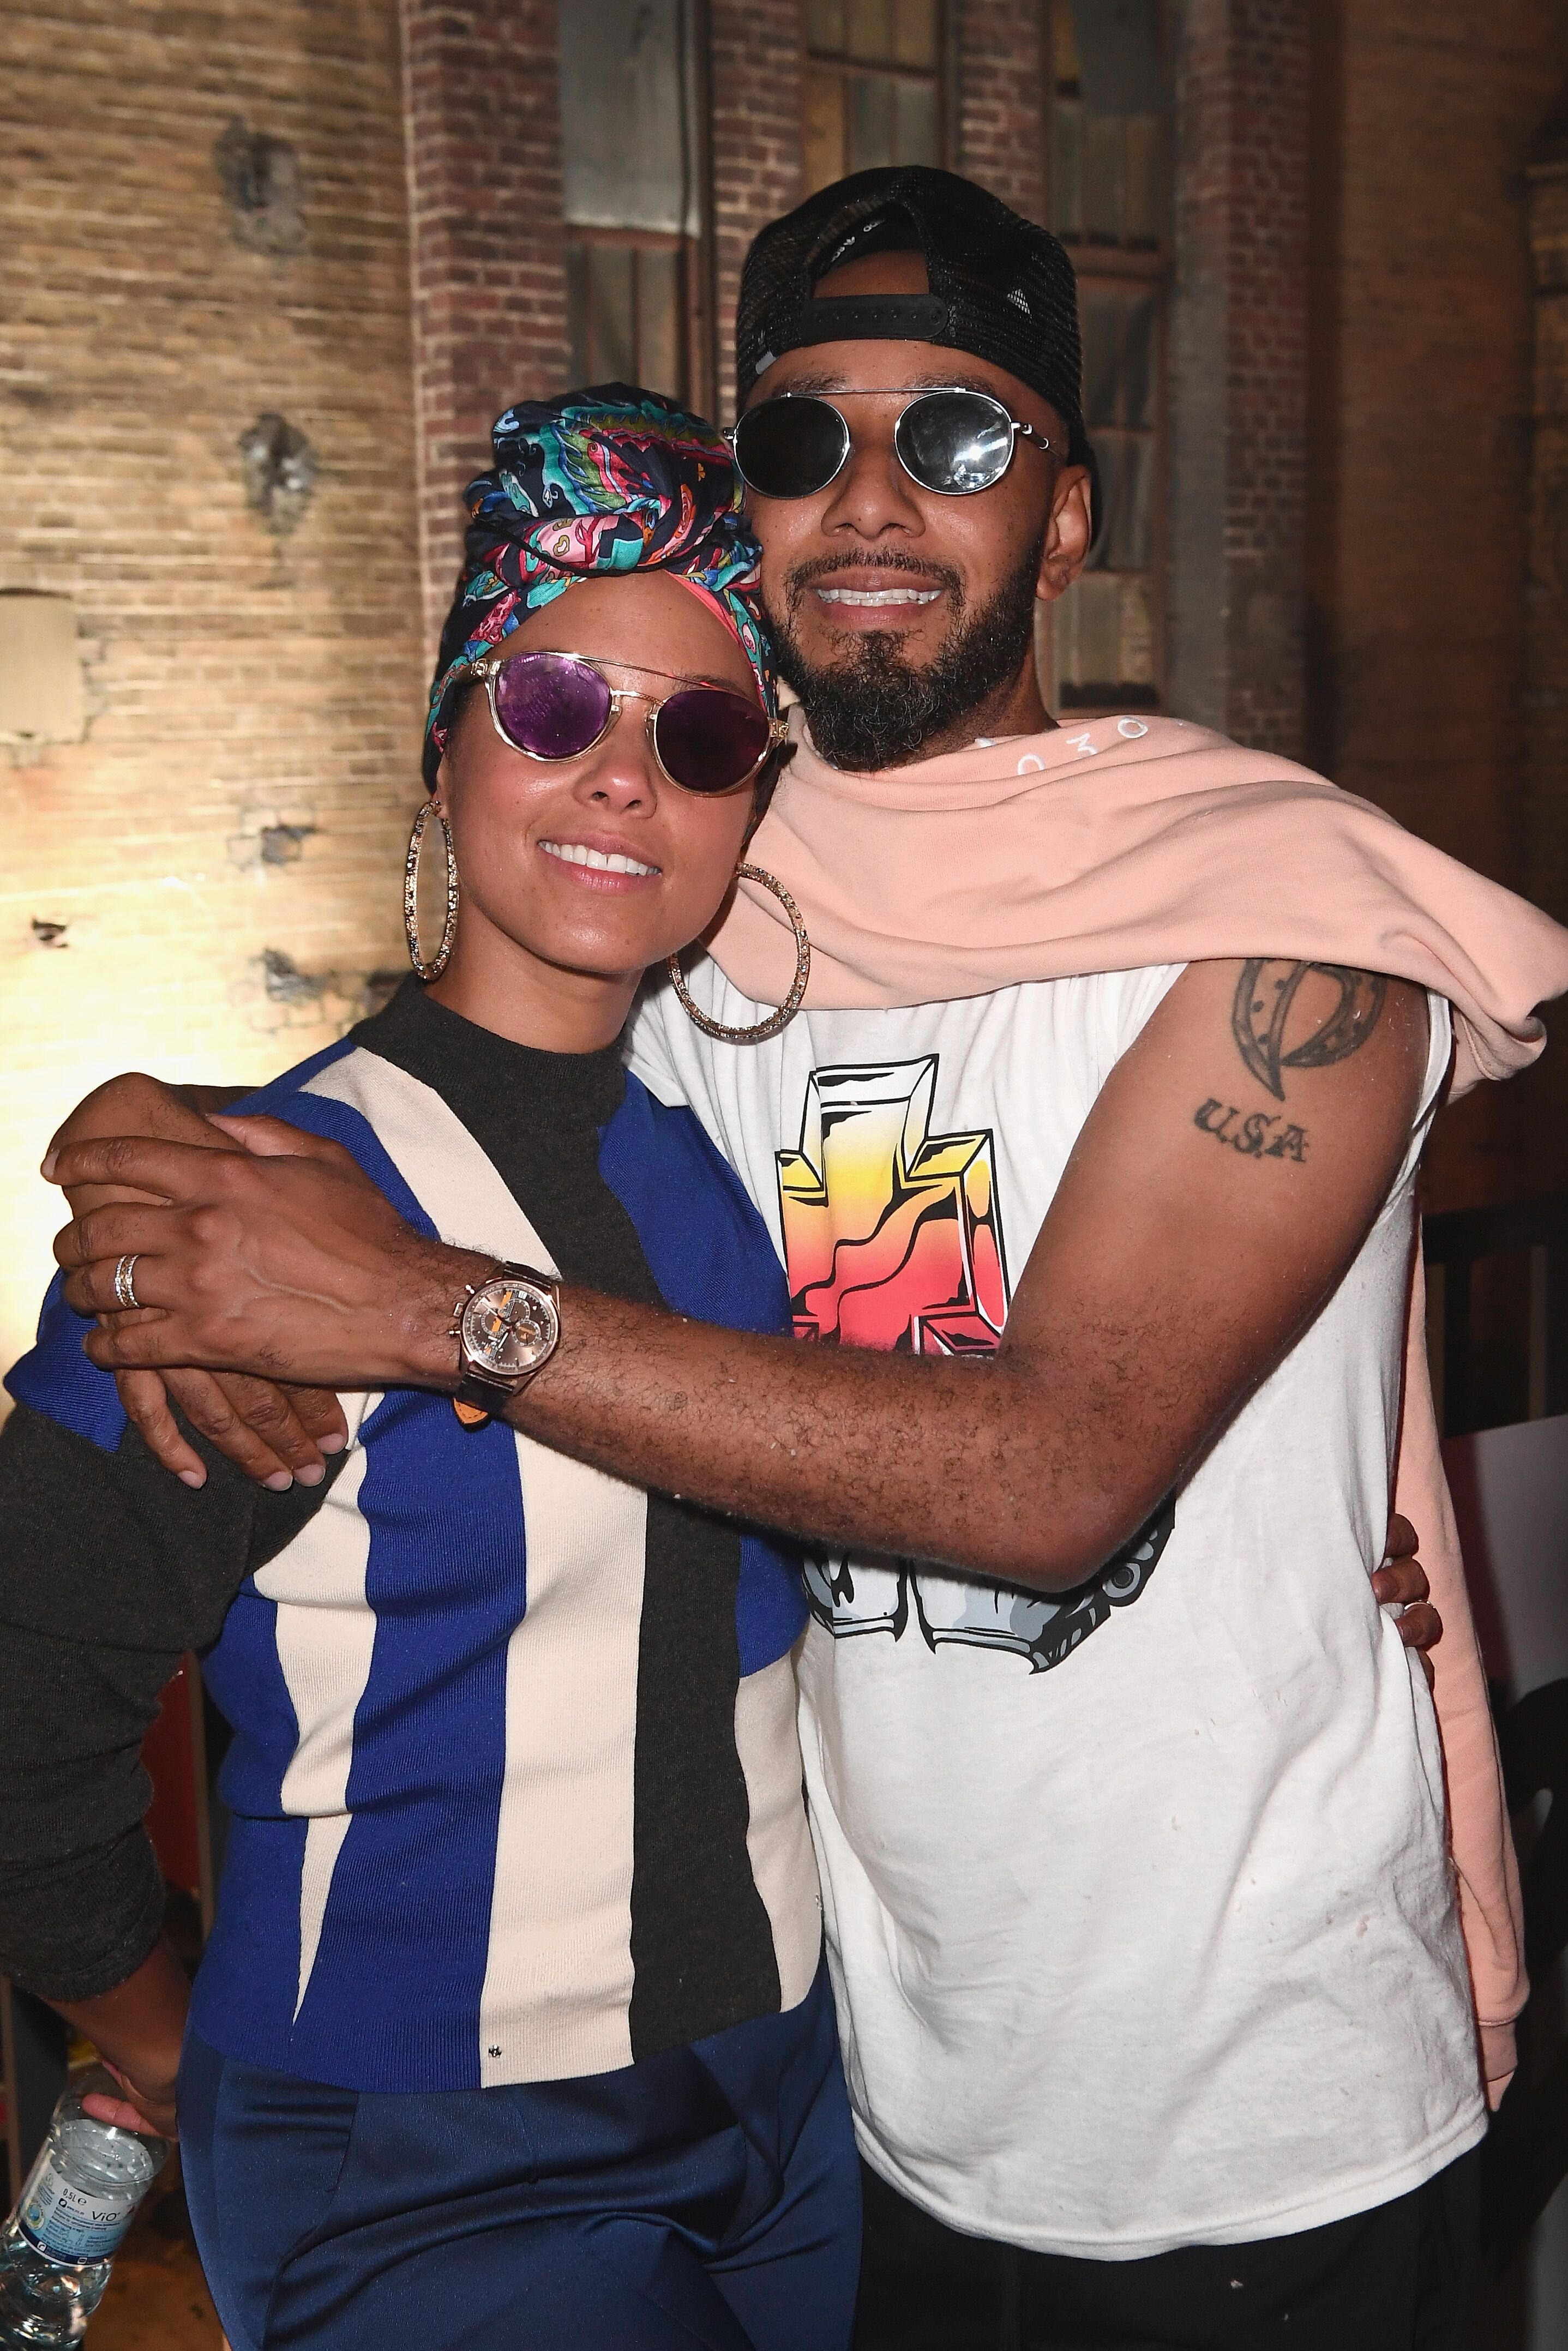 """Swizz Beatz and Alicia Keys at the """"The Dean Collection Present: No Commission"""" in 2017 in Berlin   Source: Getty Images"""